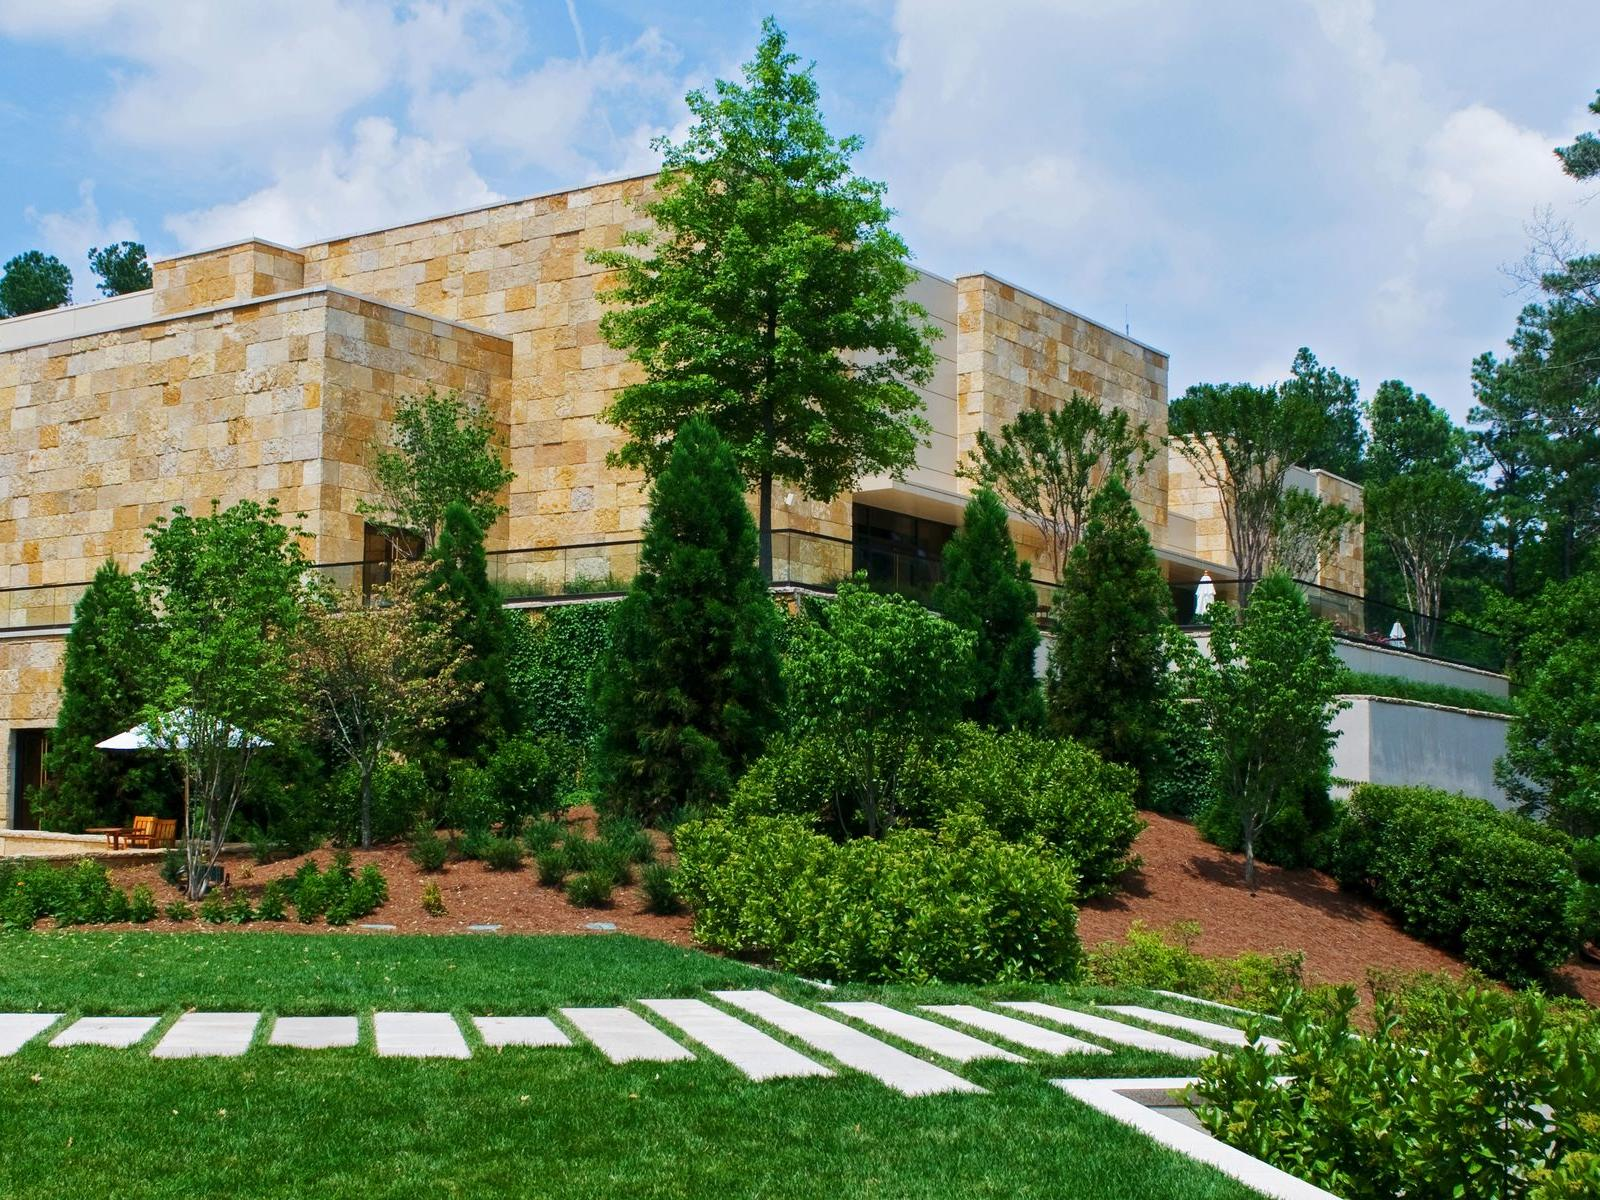 outdoor space for wedding with foliage